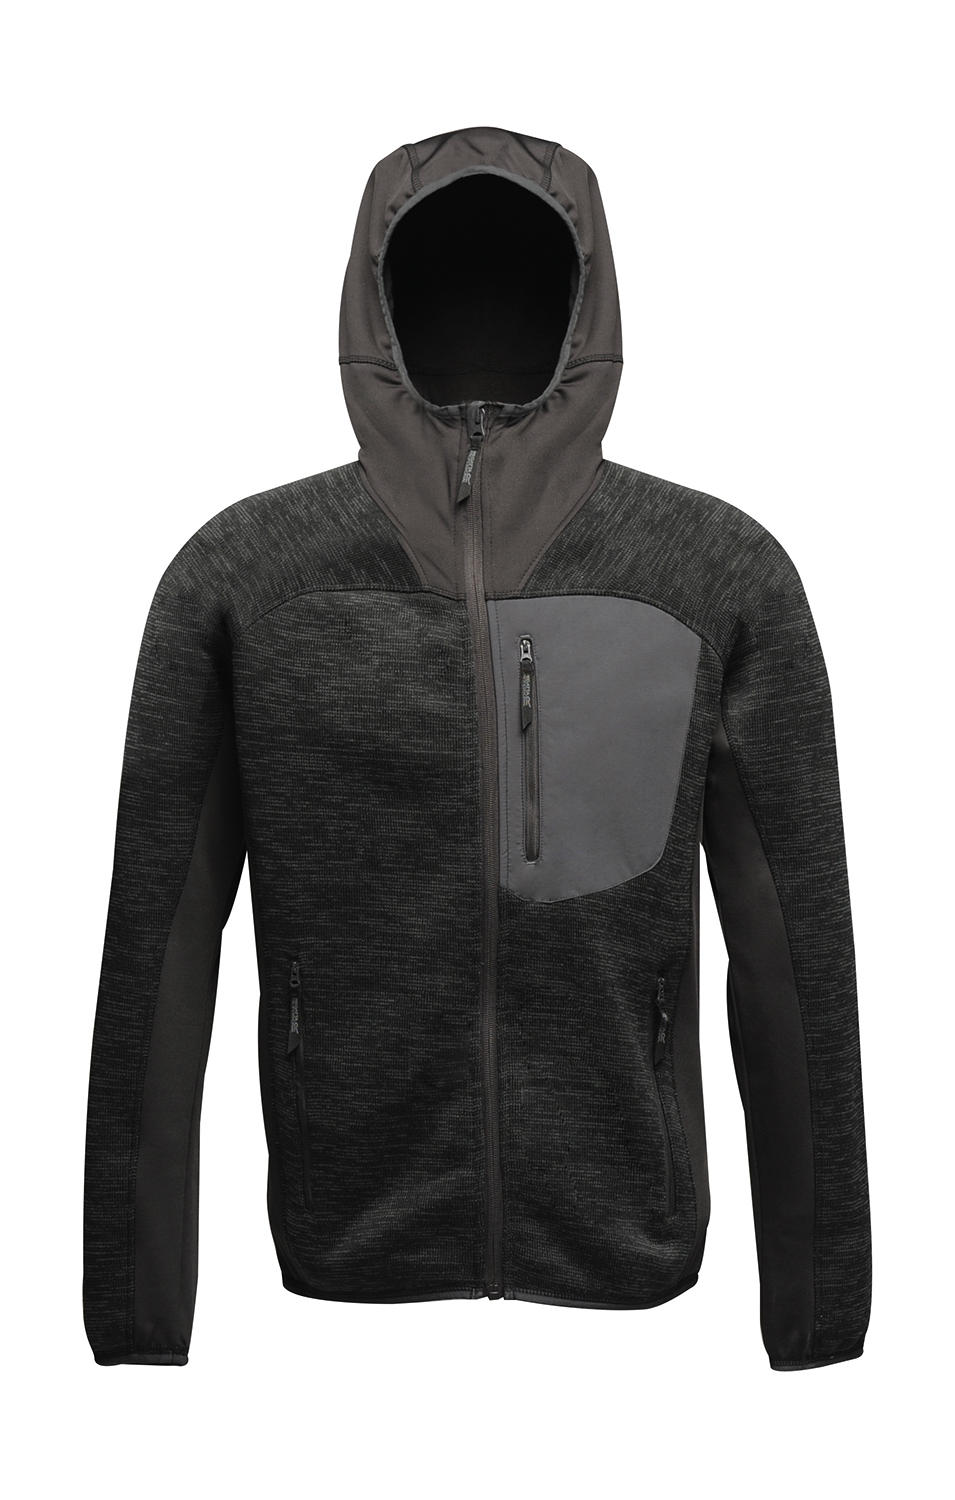 Coldspring Hybrid Hooded Fleece